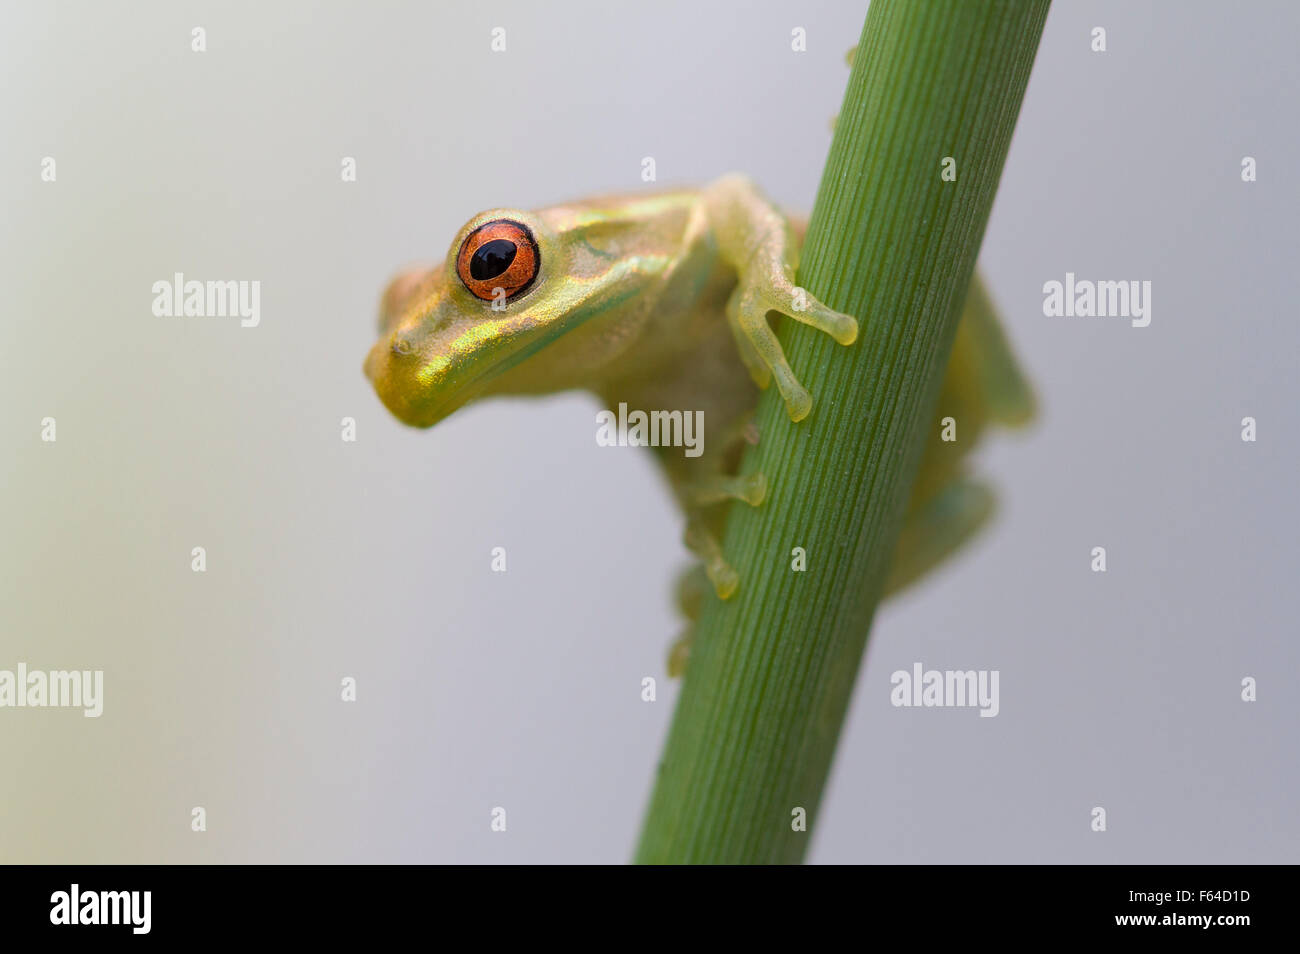 Cuban Treefrog (Osteopilus septentrionalis) Fort Myers, Florida, USA. Introduced species. - Stock Image